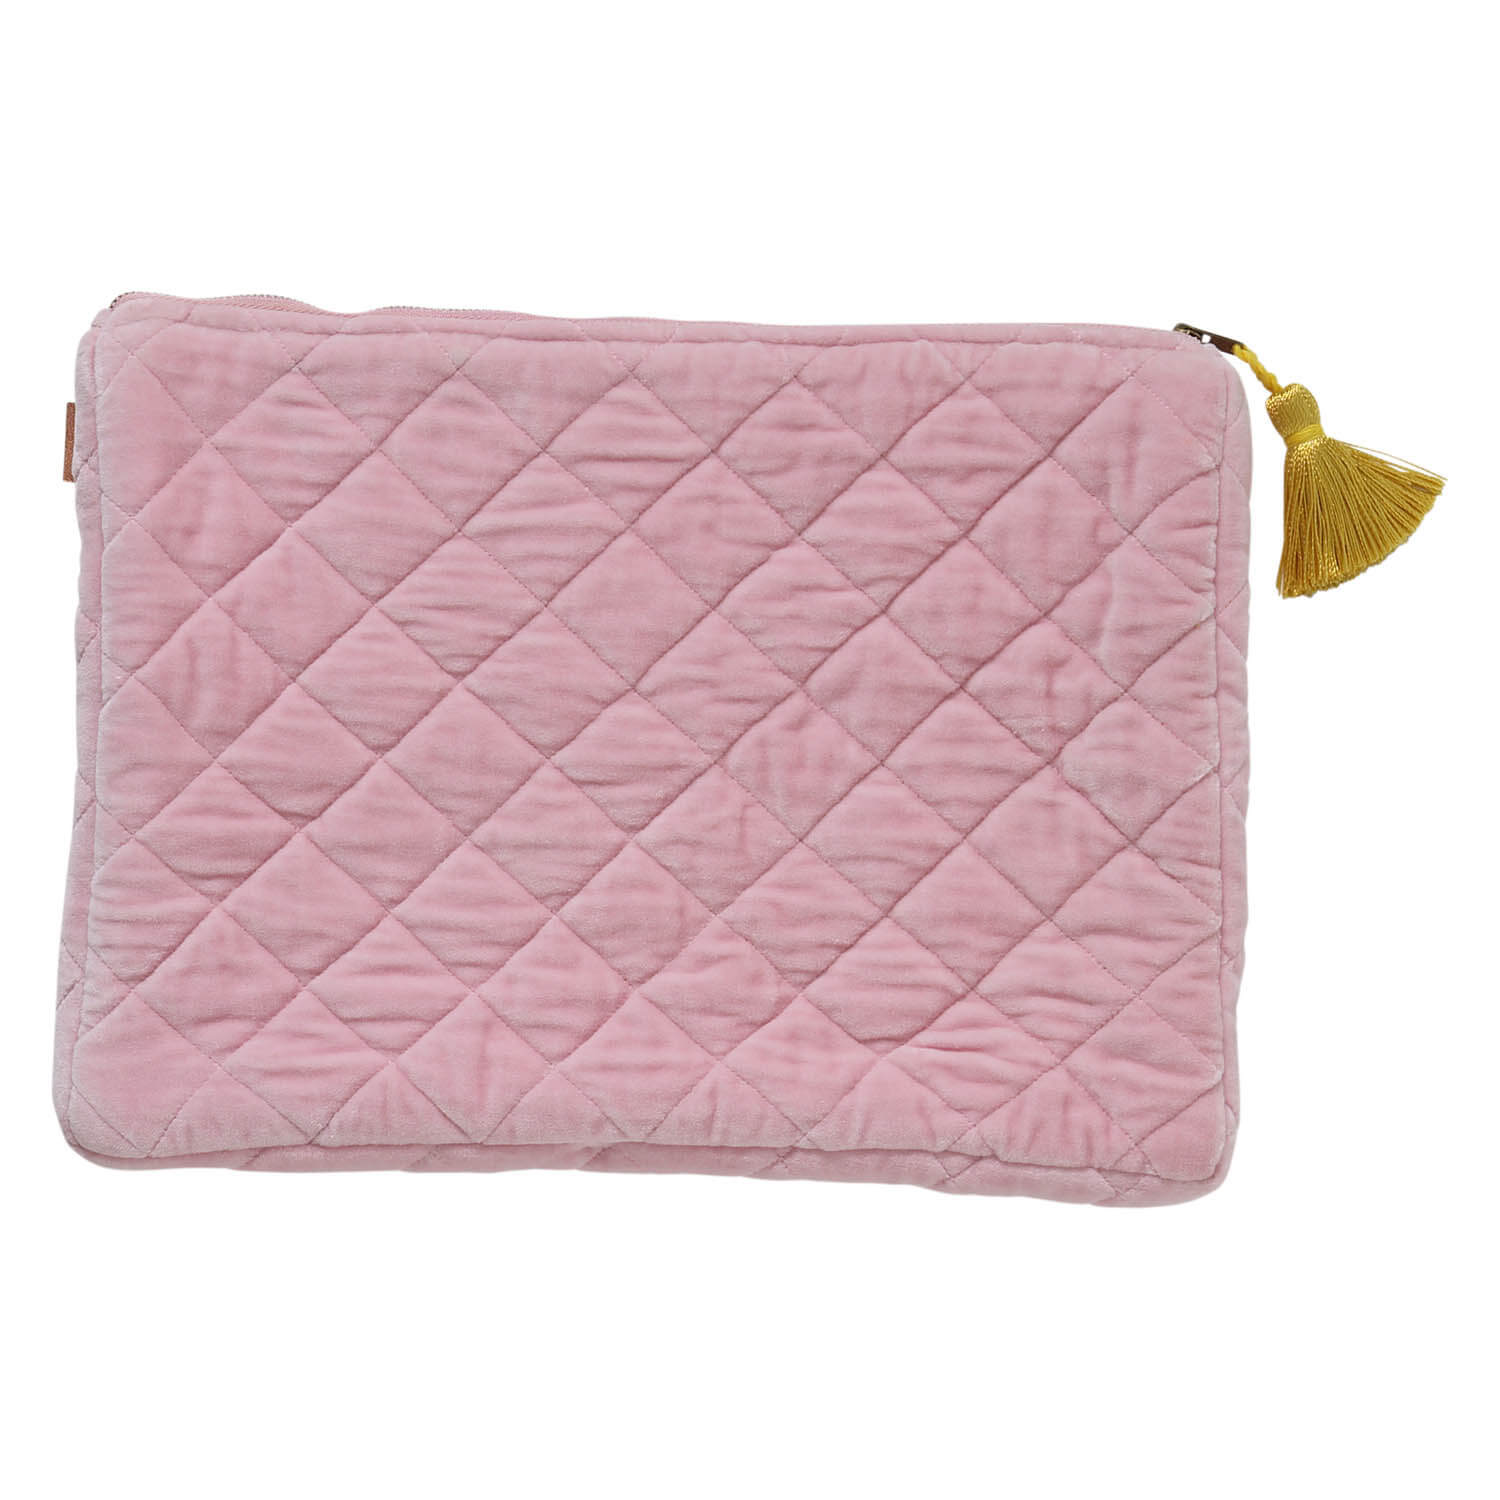 Kip and co guava pink velvet quilted laptop carry all | $59 | The Home Maven